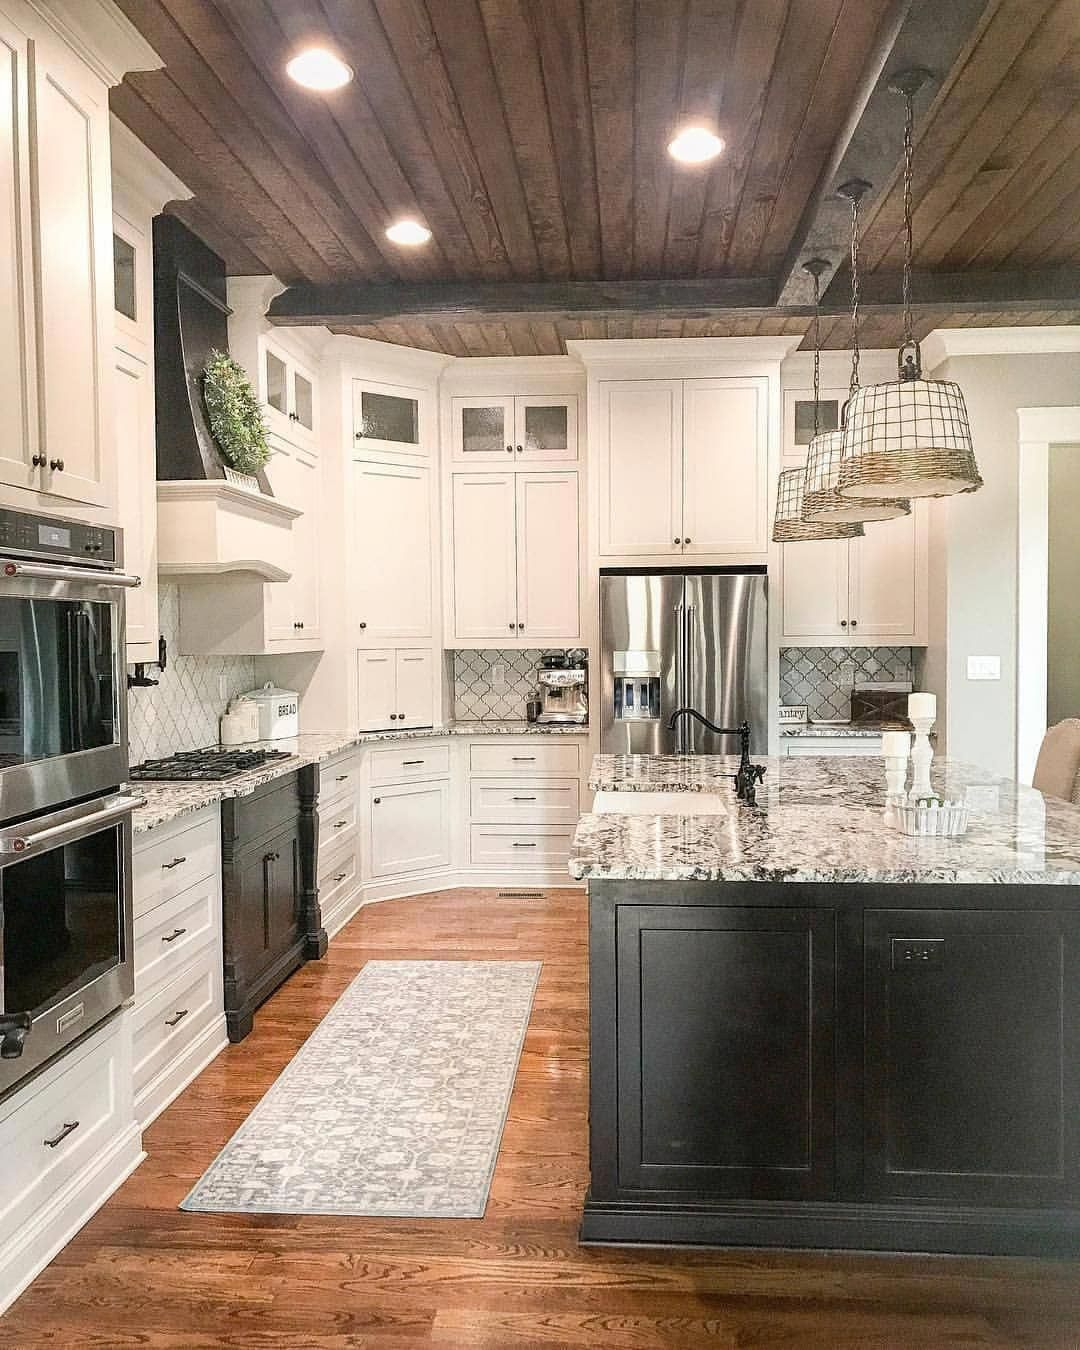 Basic kitchen cabinets  Oh to have a kitchen like this  kitchendecor kitchengoals